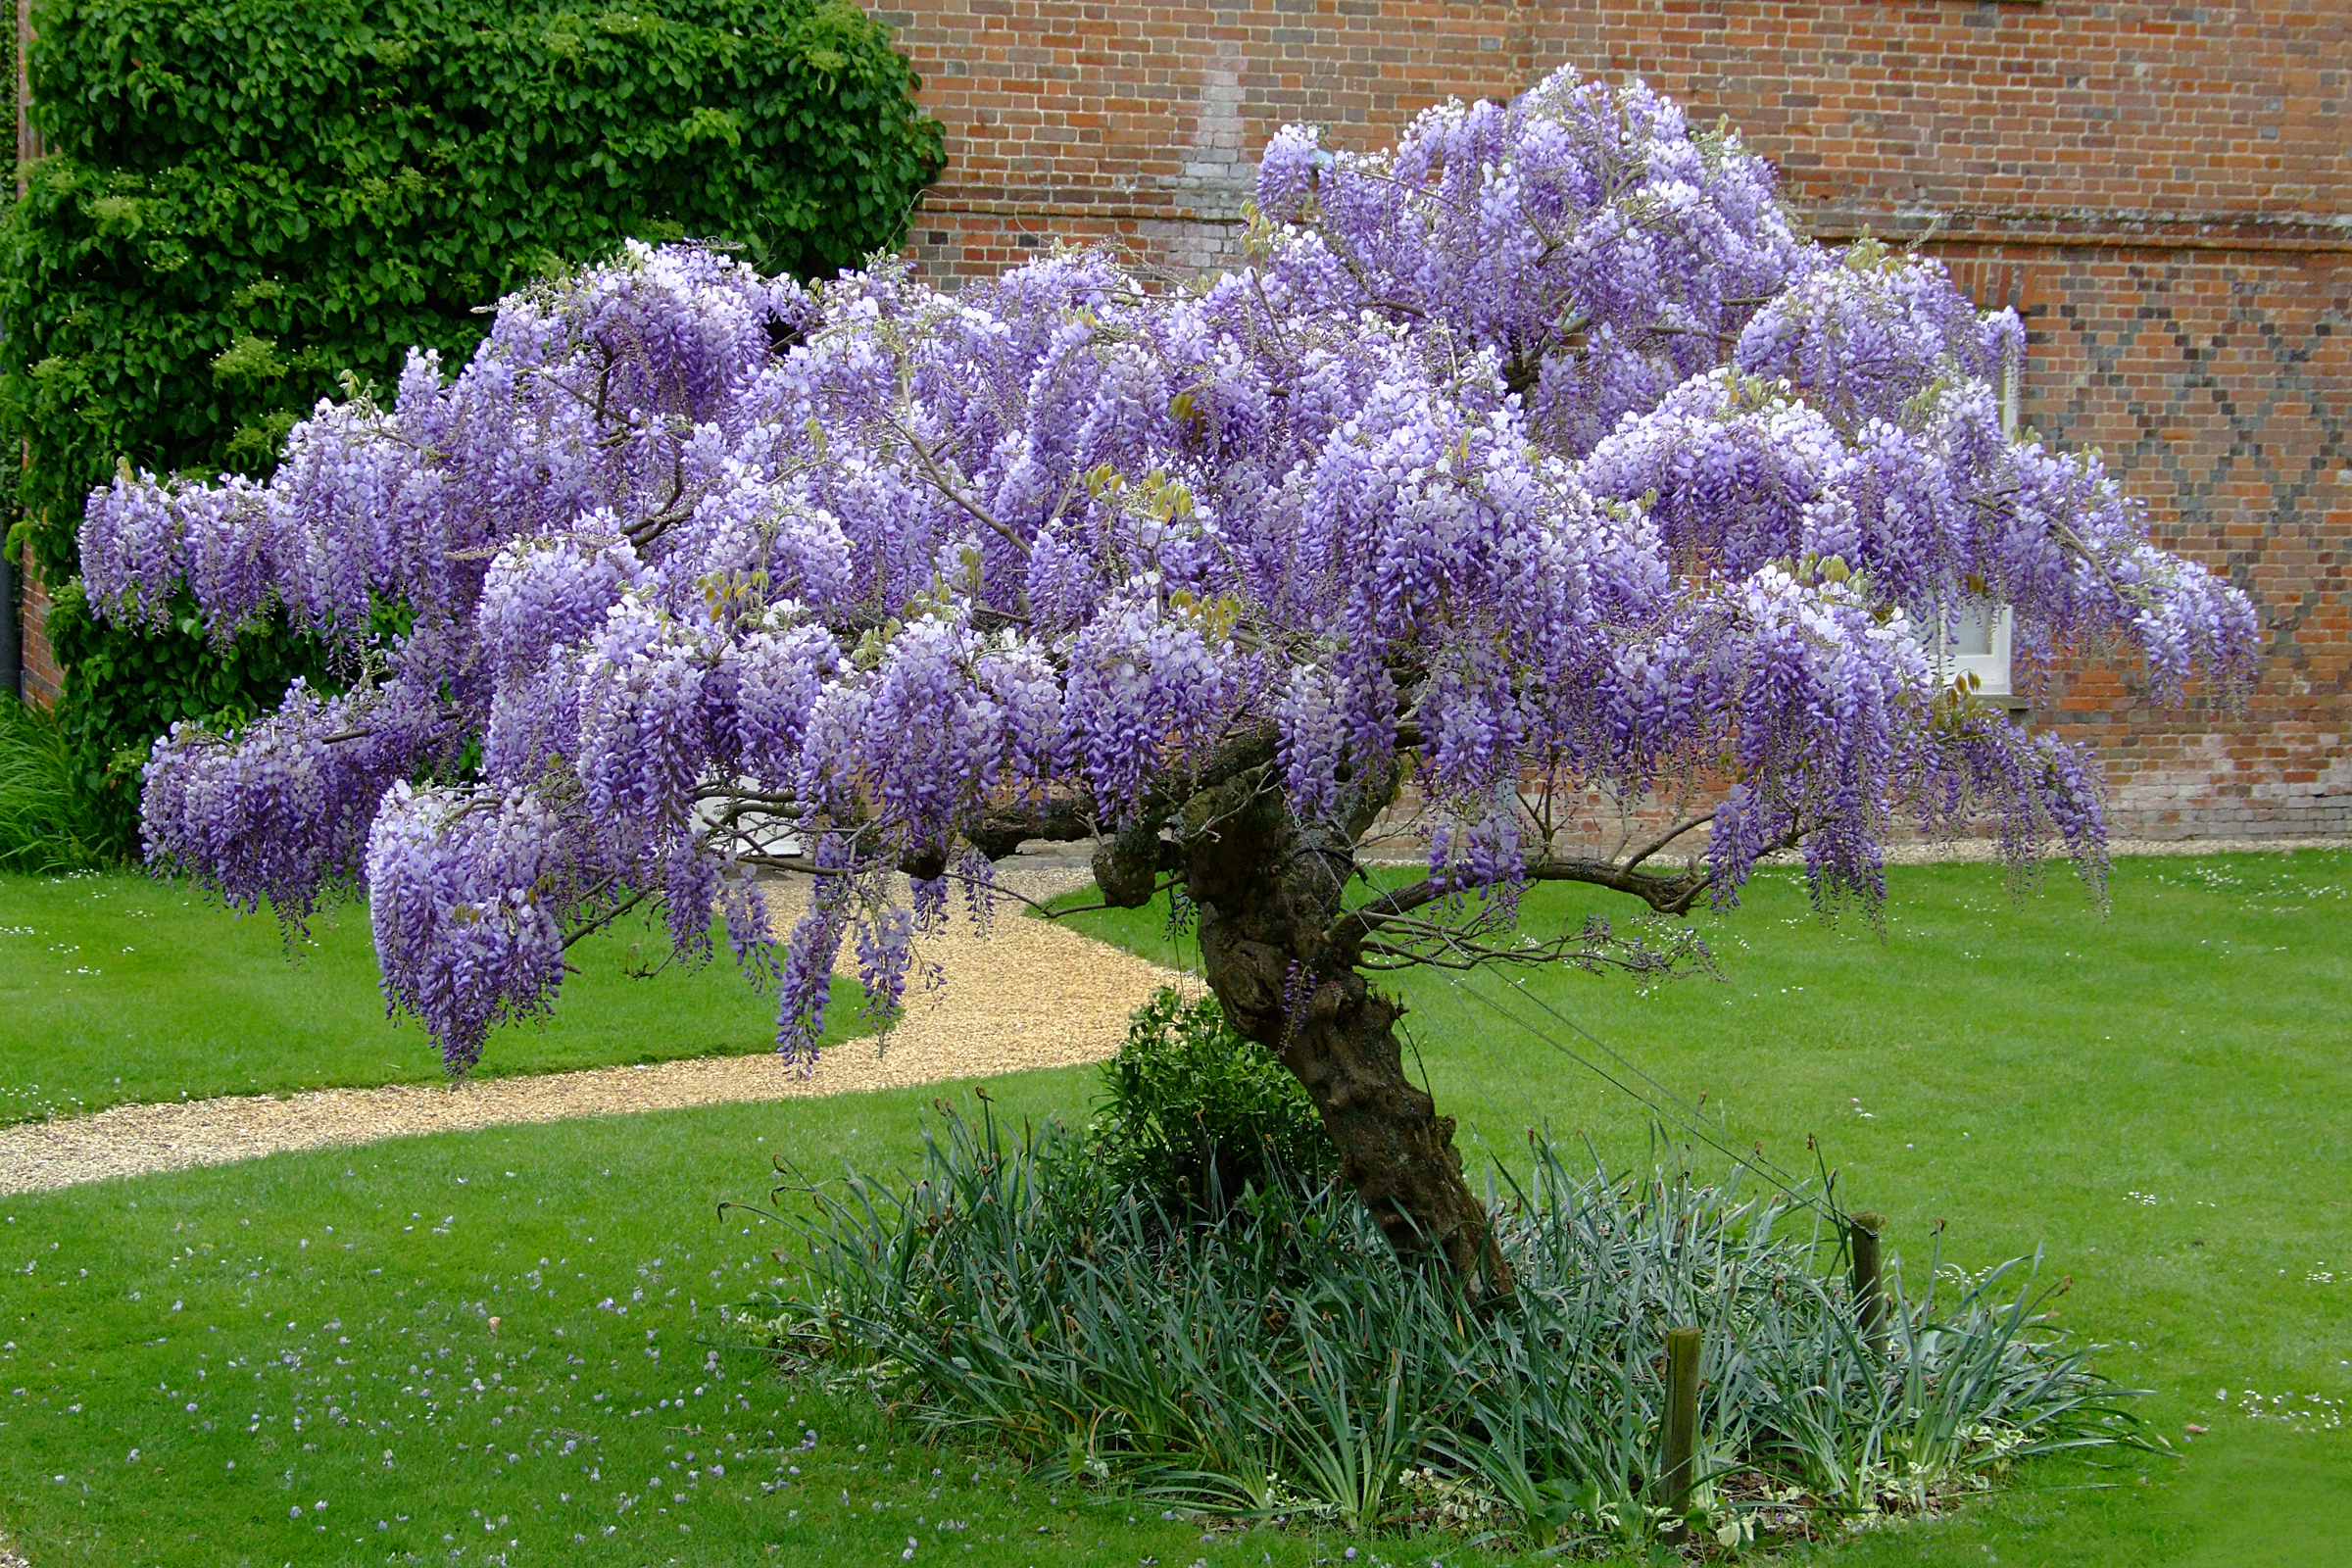 File:Wisteria at the Vyne.jpg - Wikimedia Commons